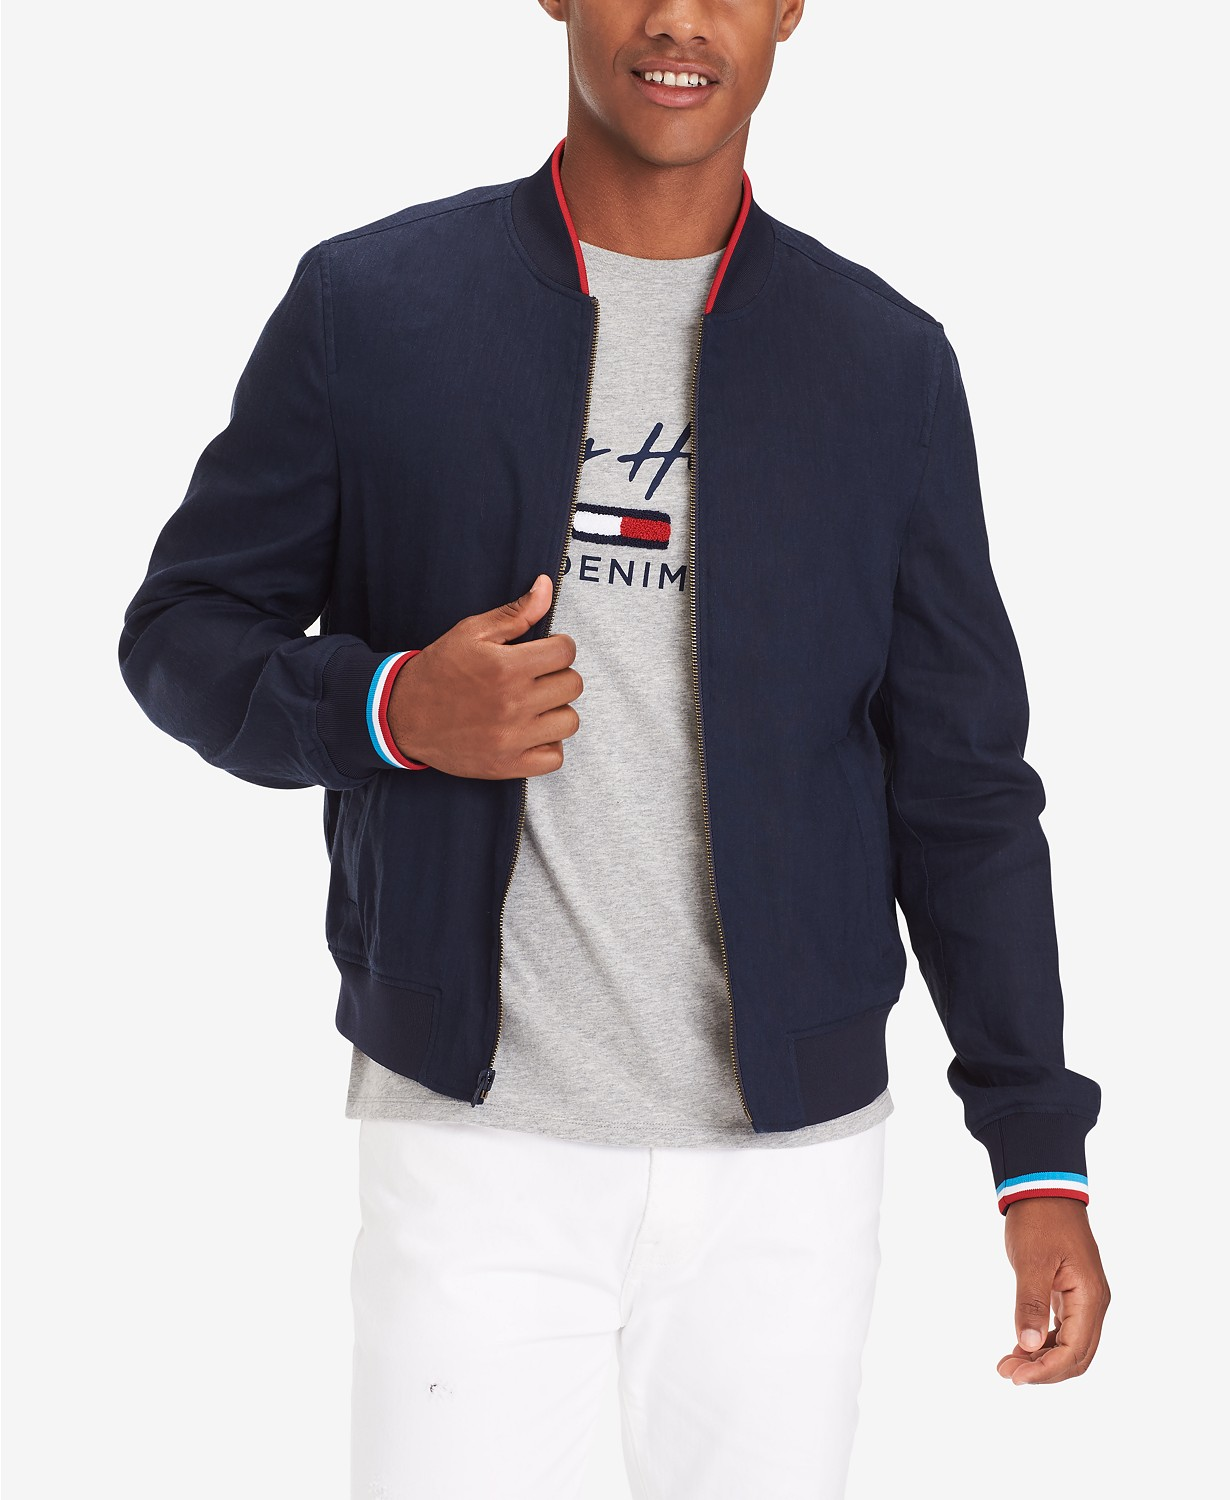 dd1a5c98b1bce Macys Online and in store Coupons, Promotions, Specials for August 2019